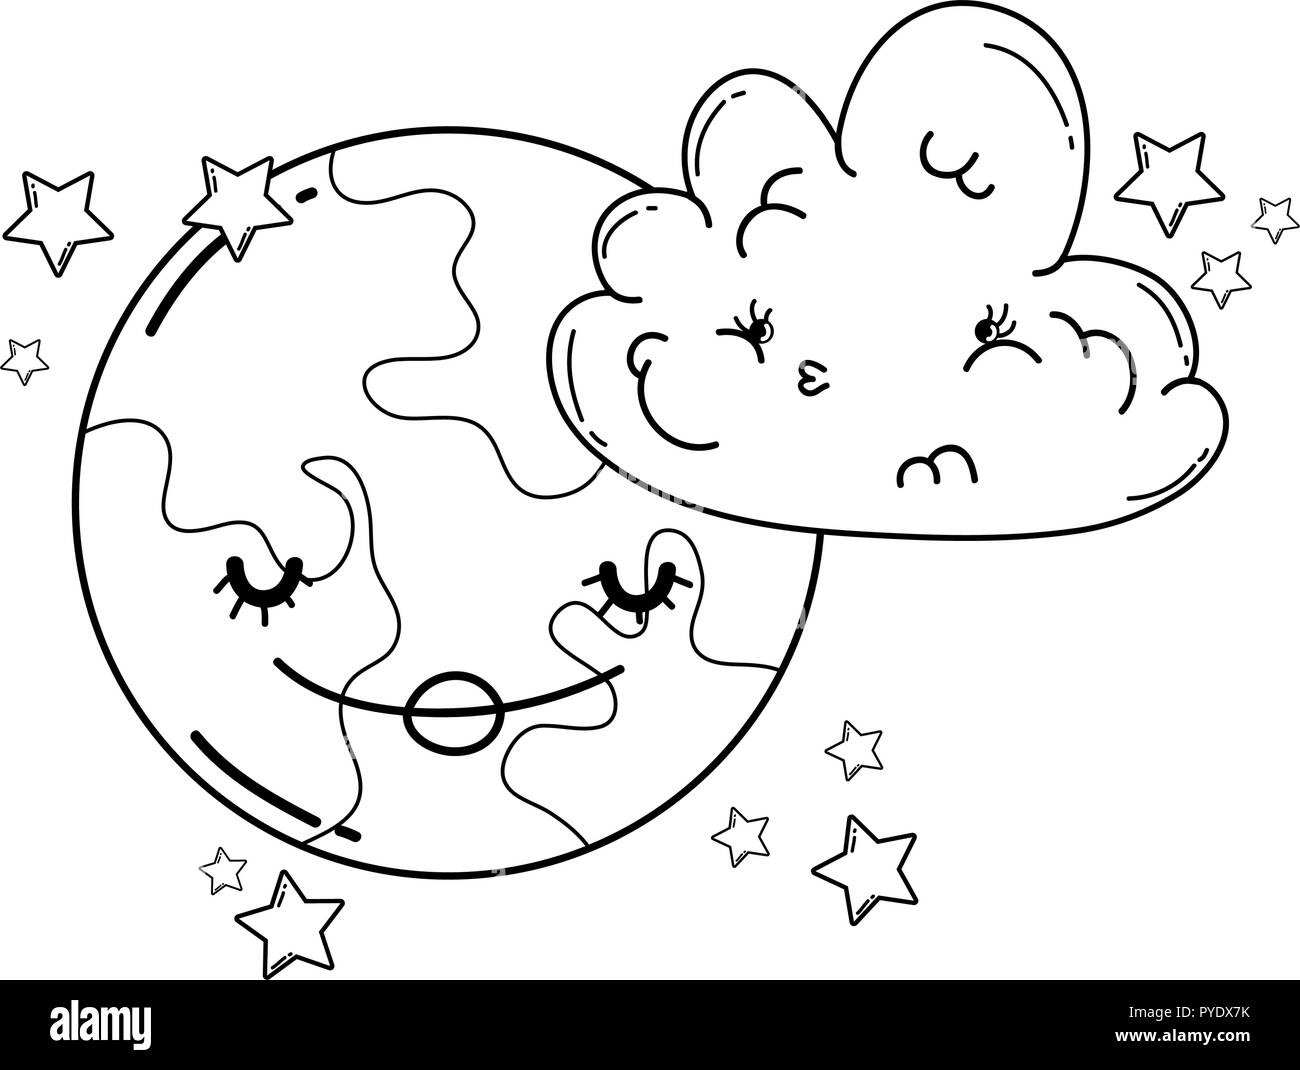 Clouds and moon cute cartoons in black and white - Stock Image